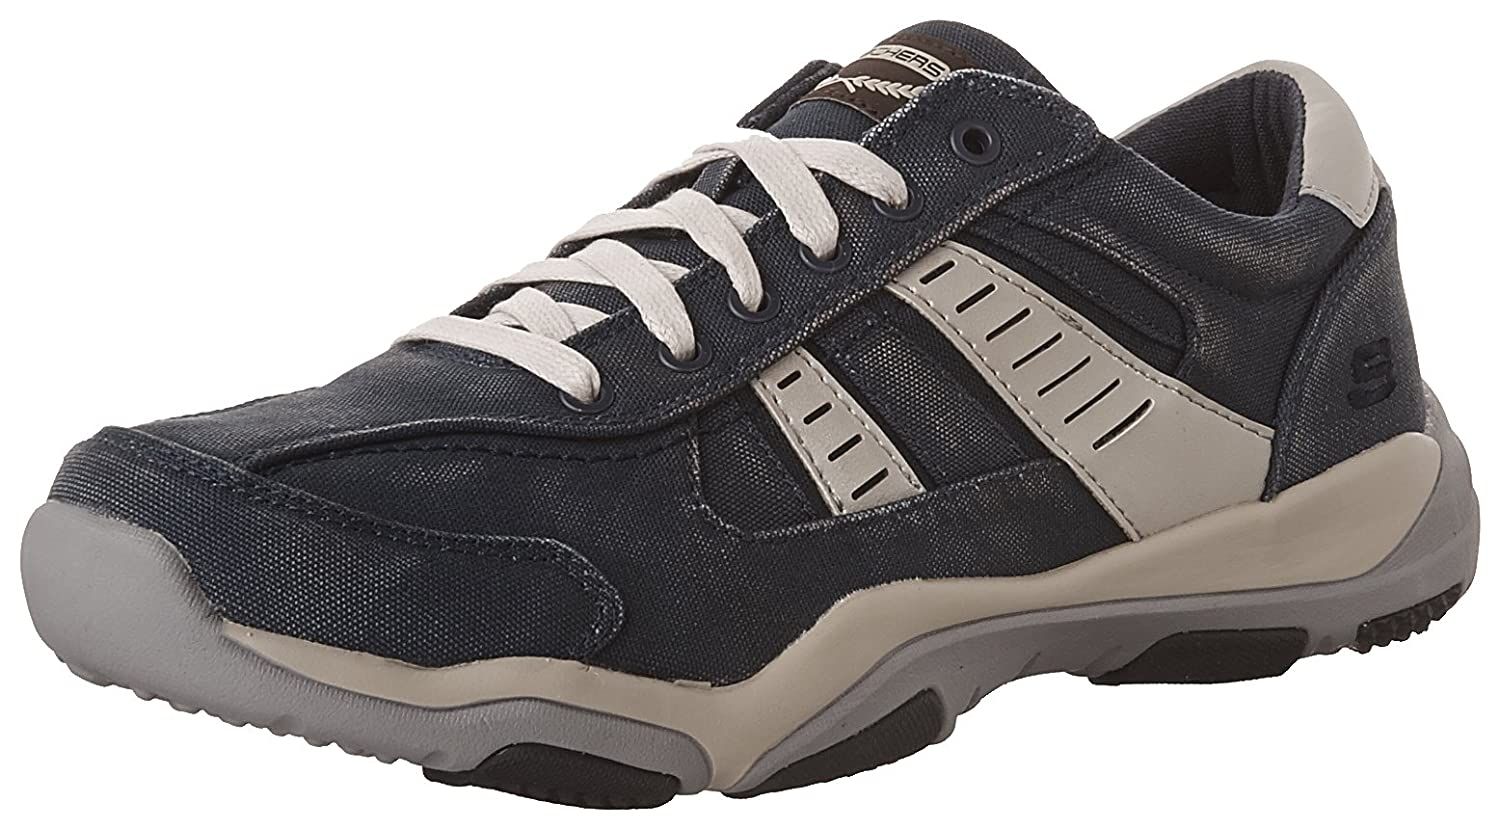 Skechers Chaussures - Larson Masson 64972 - Navy, Taille:eur 41